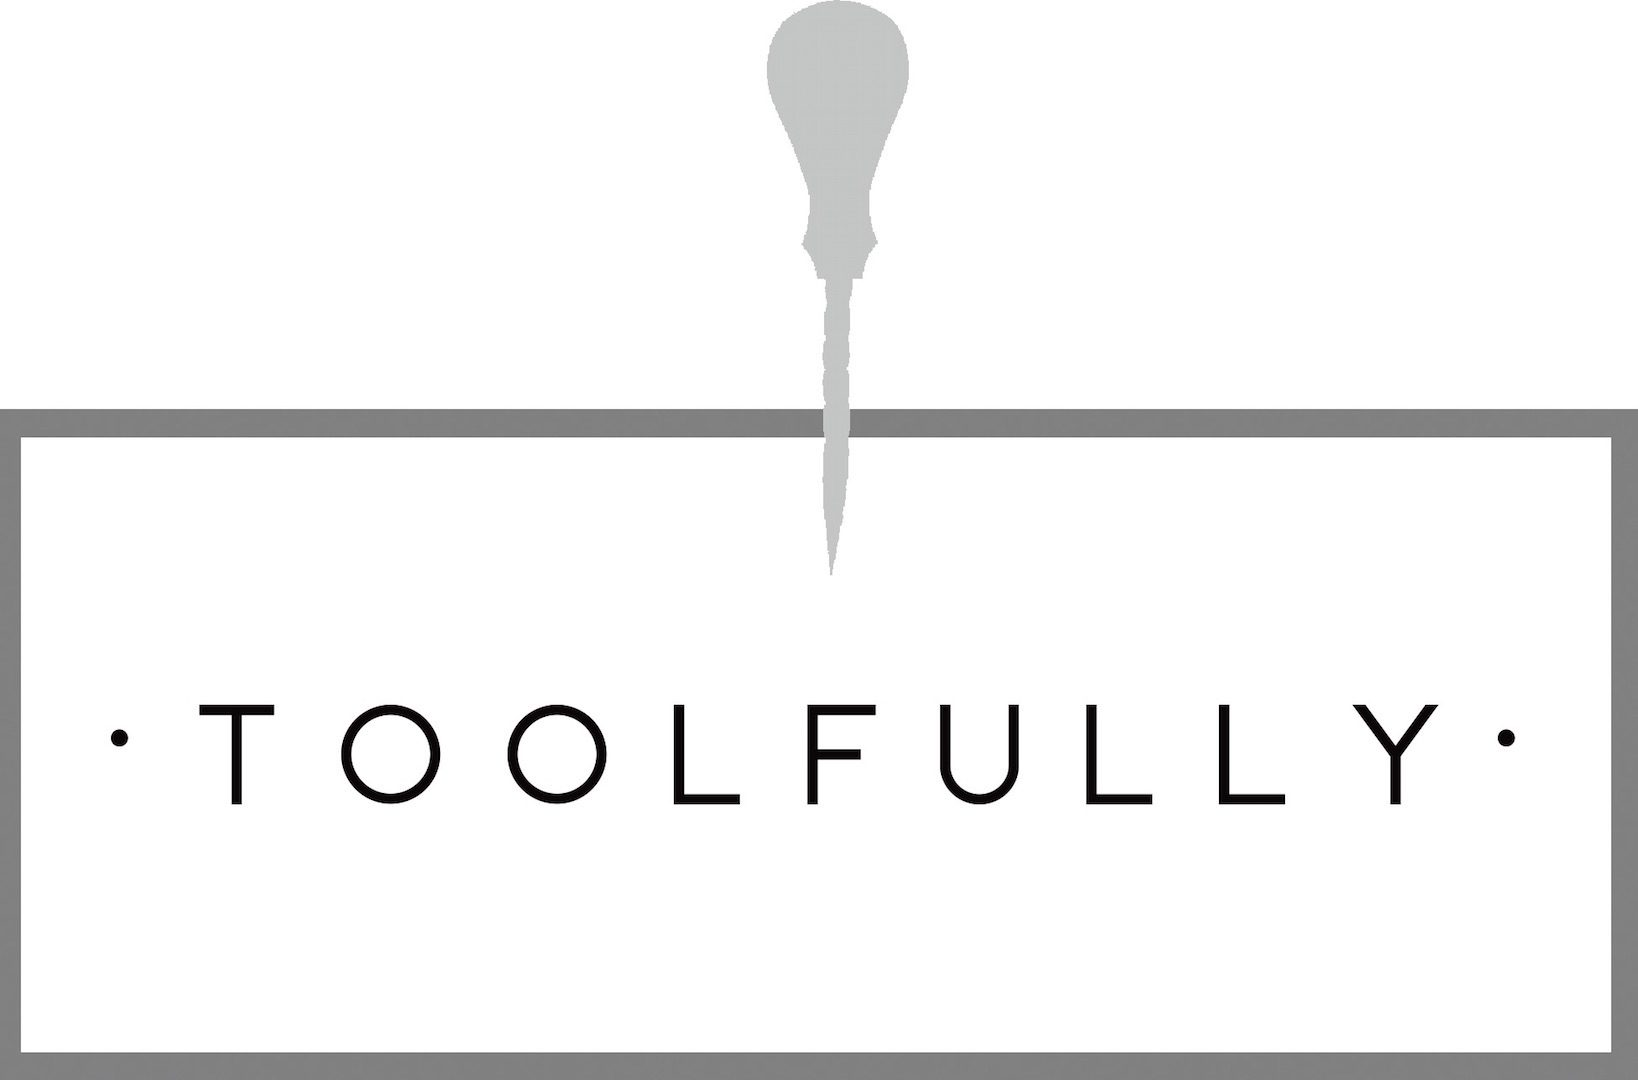 toolfully.com